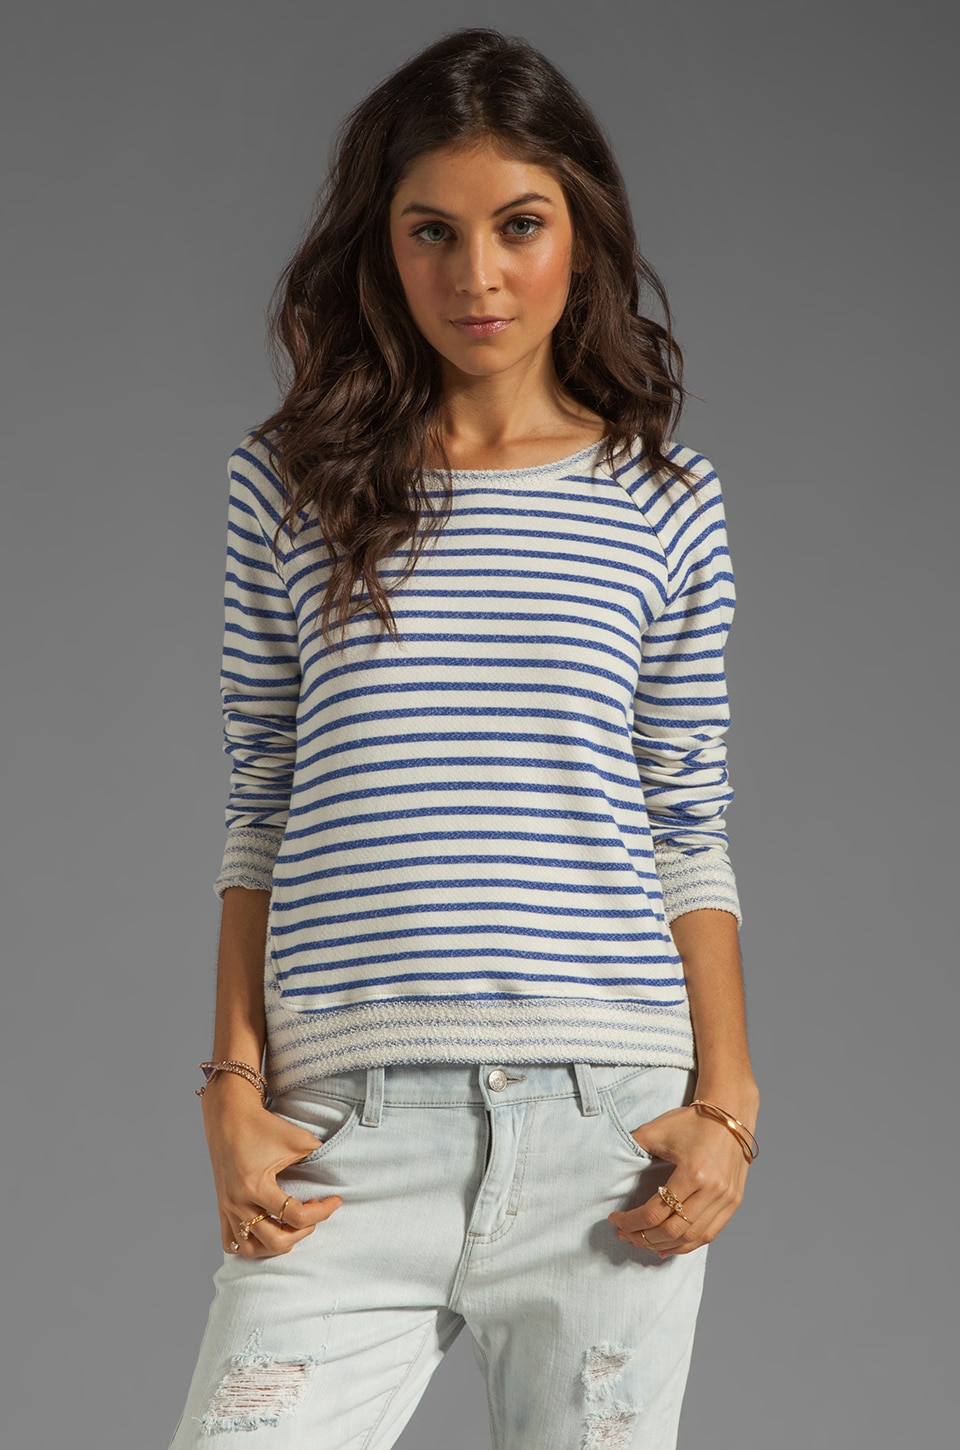 Whetherly Liam Nautical French Terry Sweatshirt in Sailor